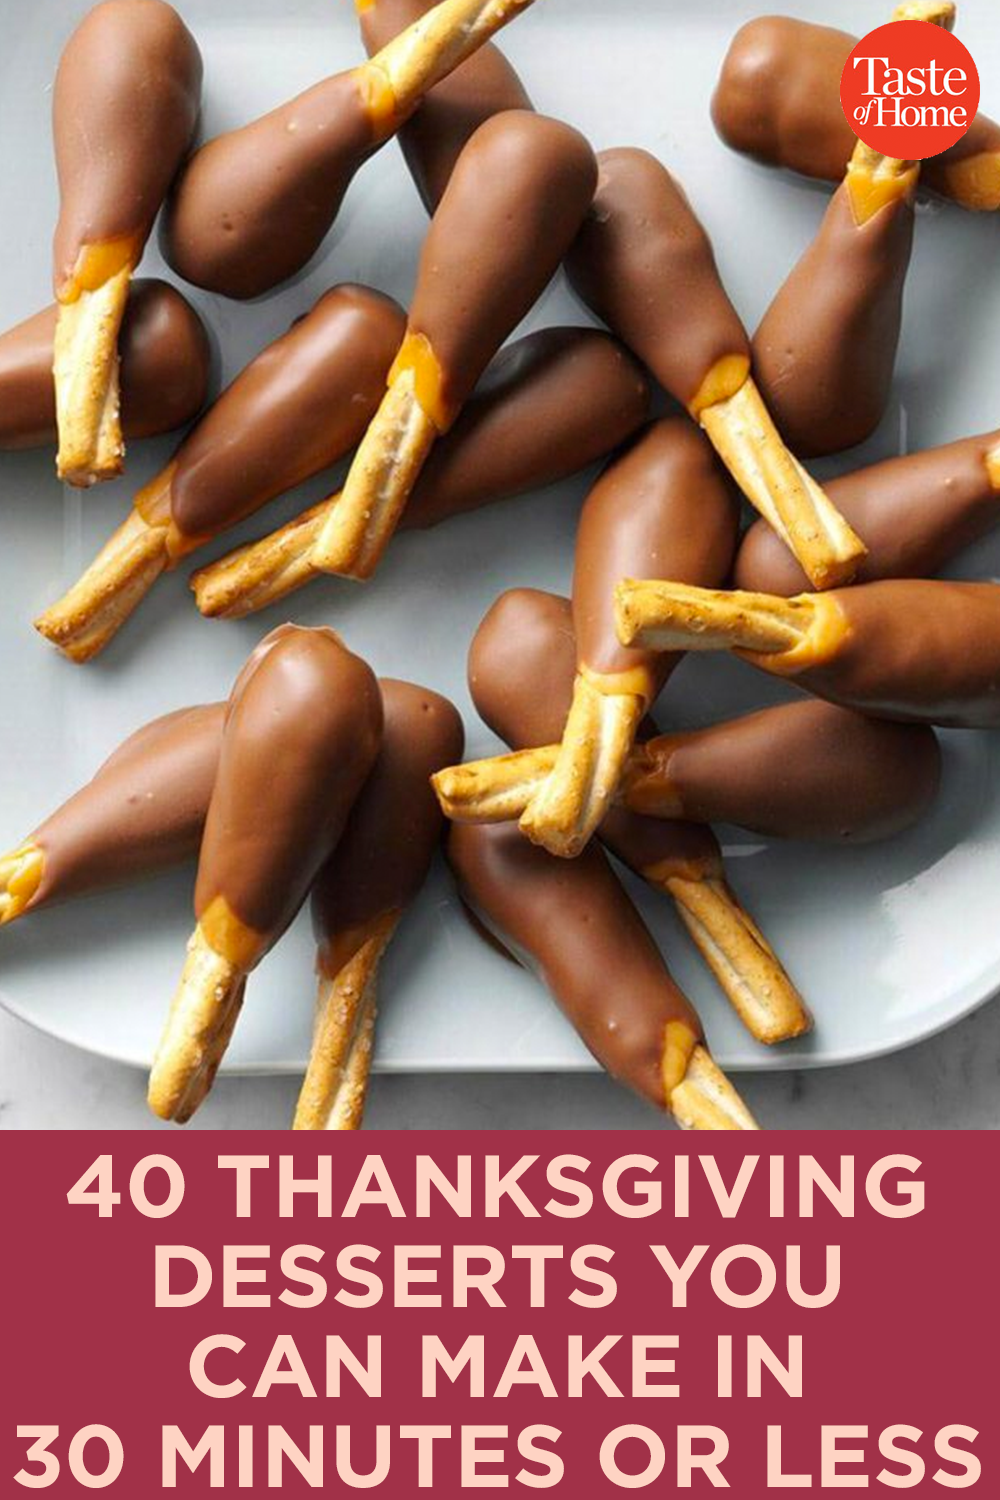 40 Thanksgiving Desserts You Can Make in 30 Minutes Or Less